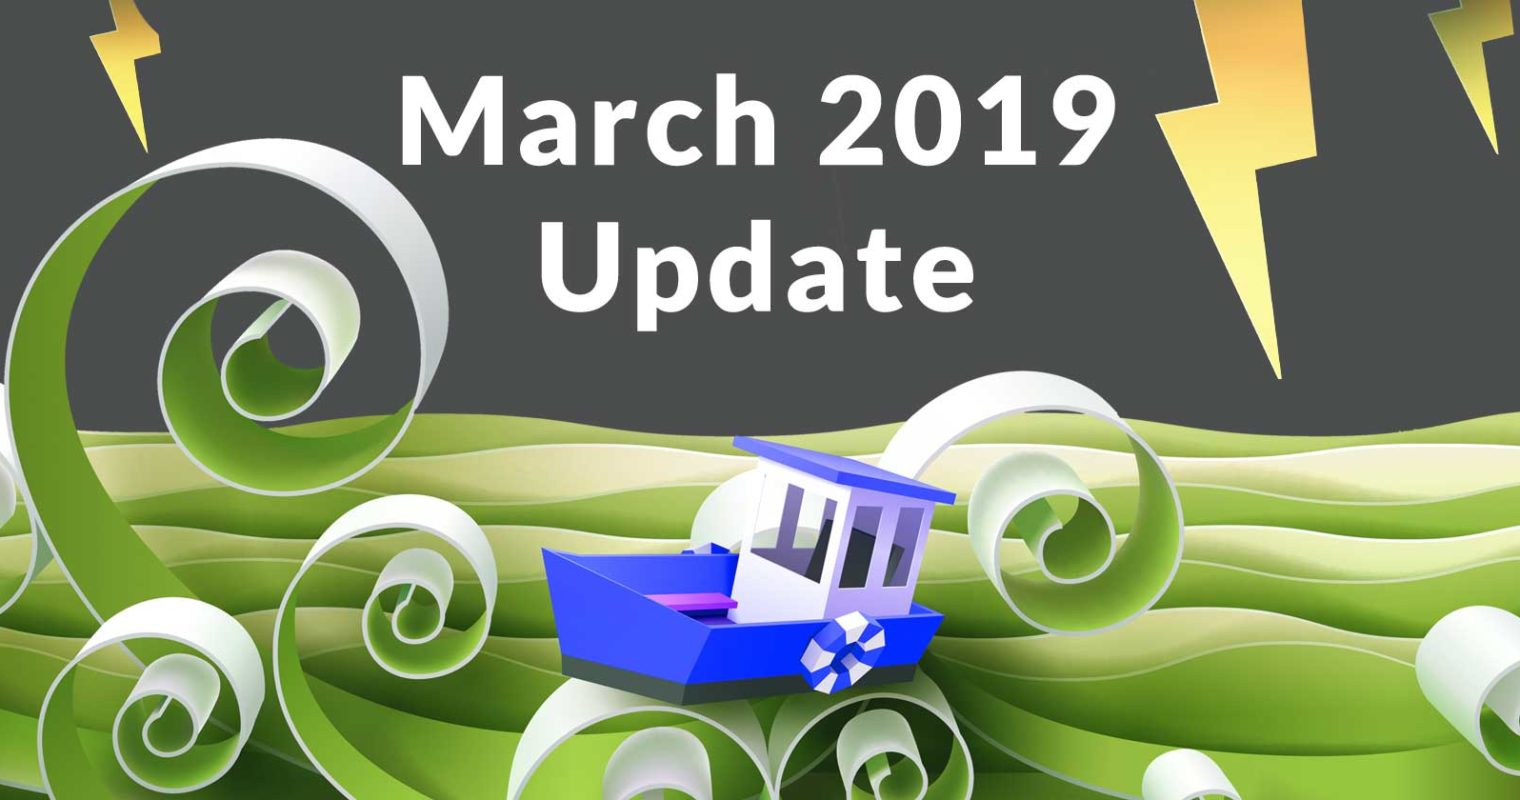 Google March 2019 Update Theories on How to Fix